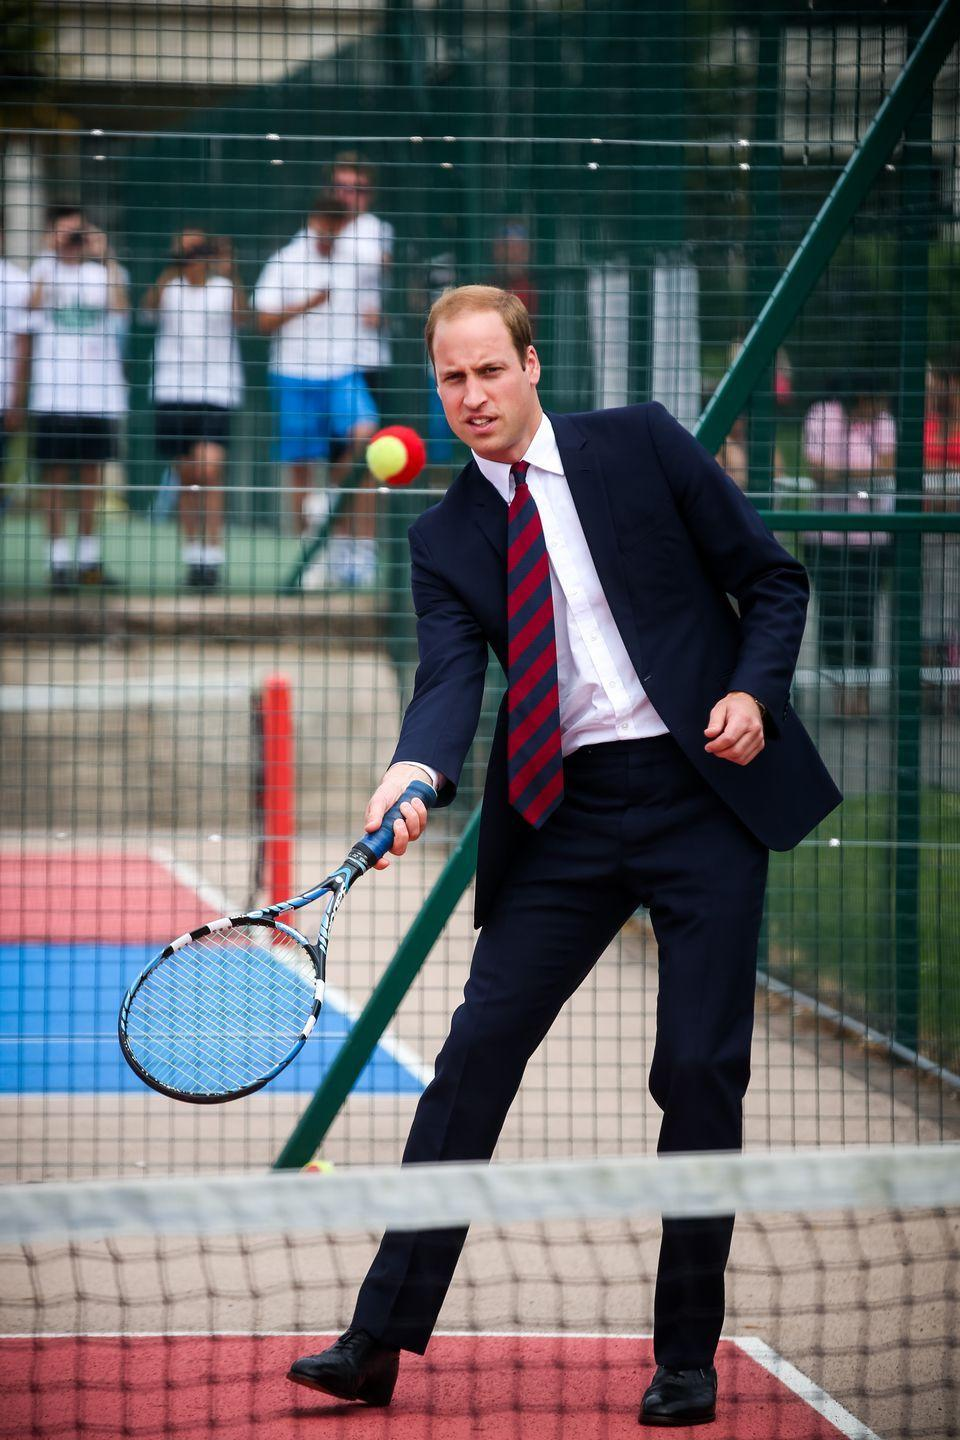 <p>During a visit to the Coventry War Memorial Park, Prince William hit a few balls while fans looked on. </p>